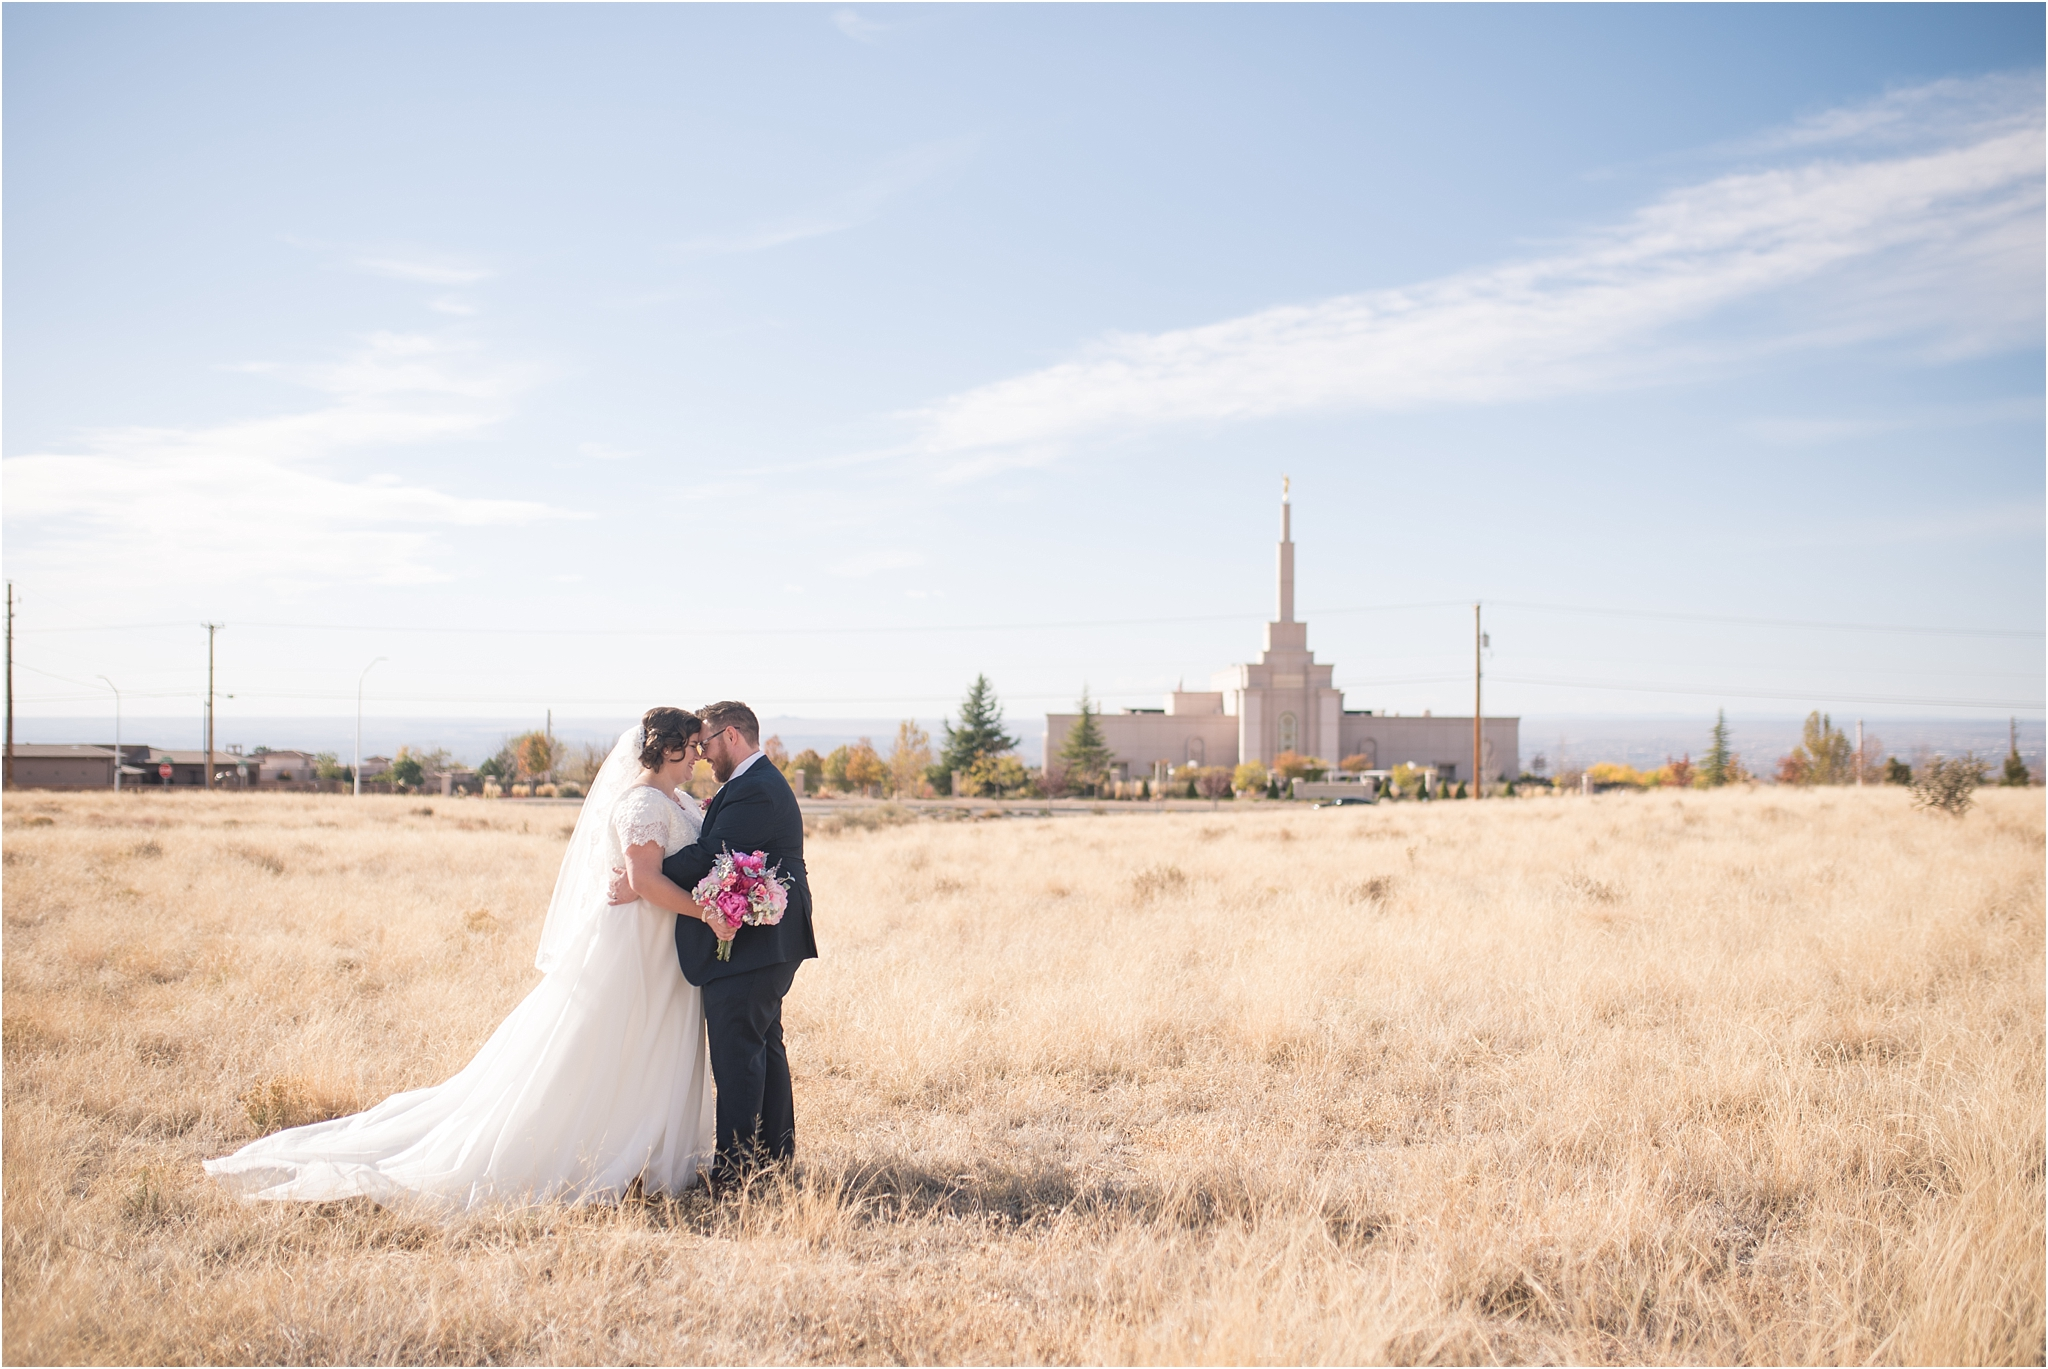 kayla kitts photography - albuquerque wedding photographer - hairpins and scissors - a cake odyssey - new mexico wedding photographer_0105.jpg